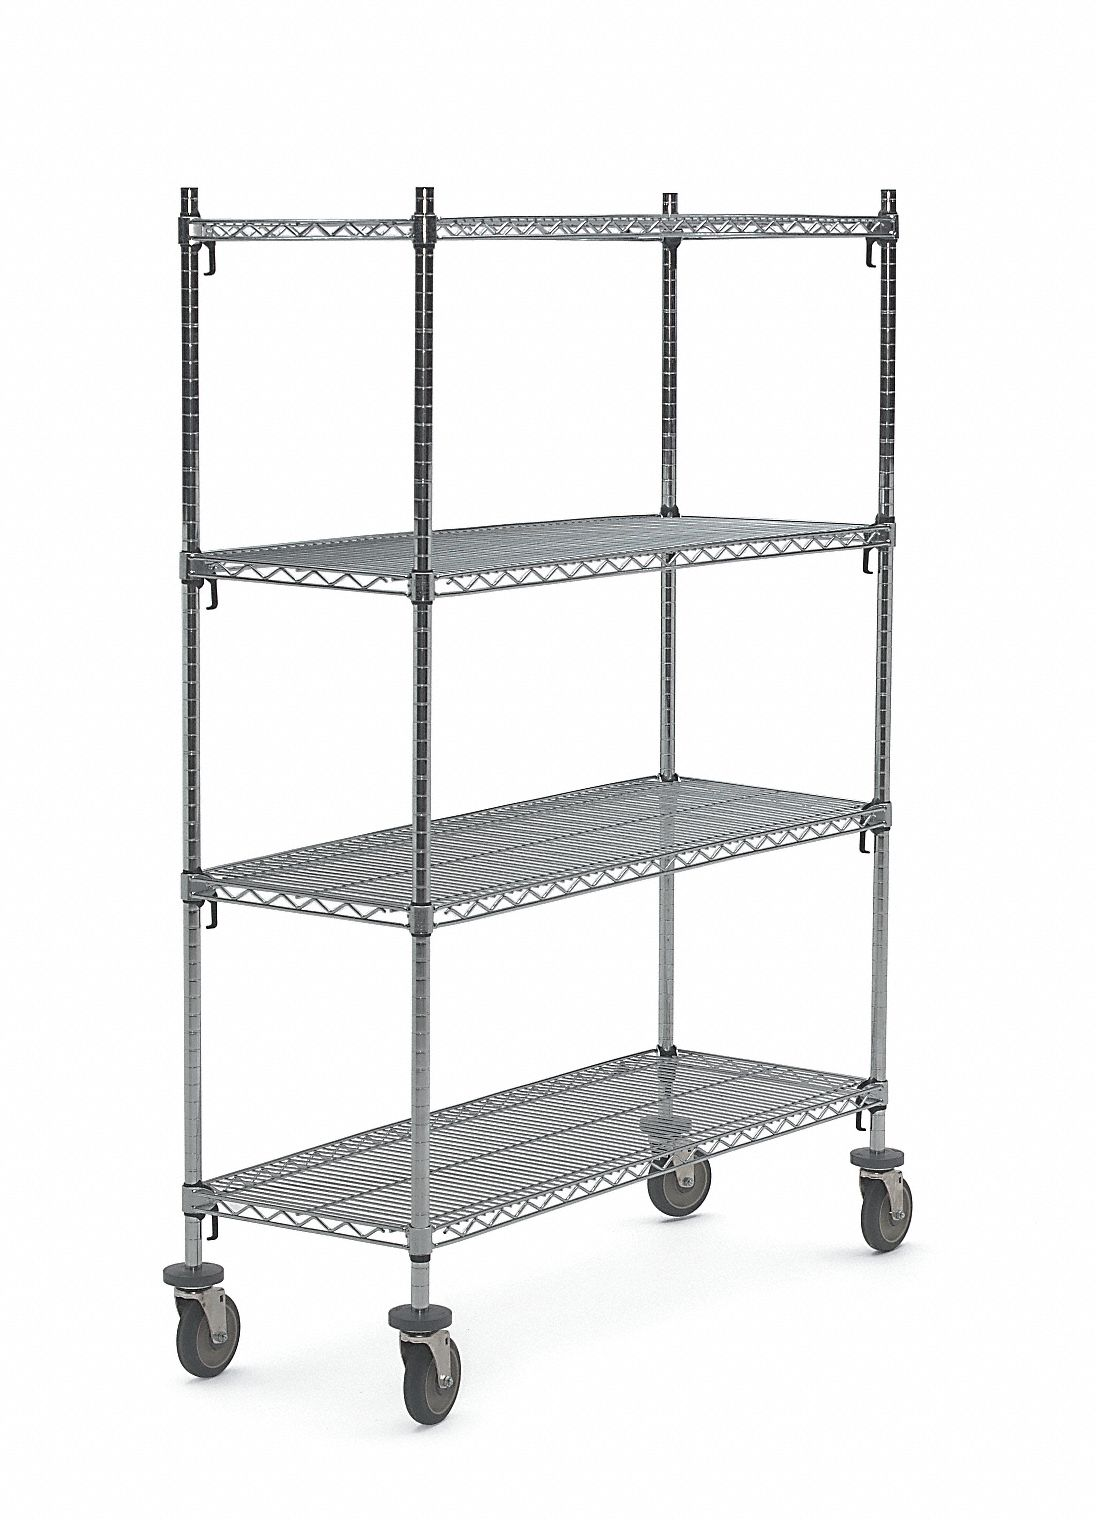 Mobile Wire Shelving Unit 60 W X 24 D X 69 H 4 Shelves Chrome Plated Finish Silver